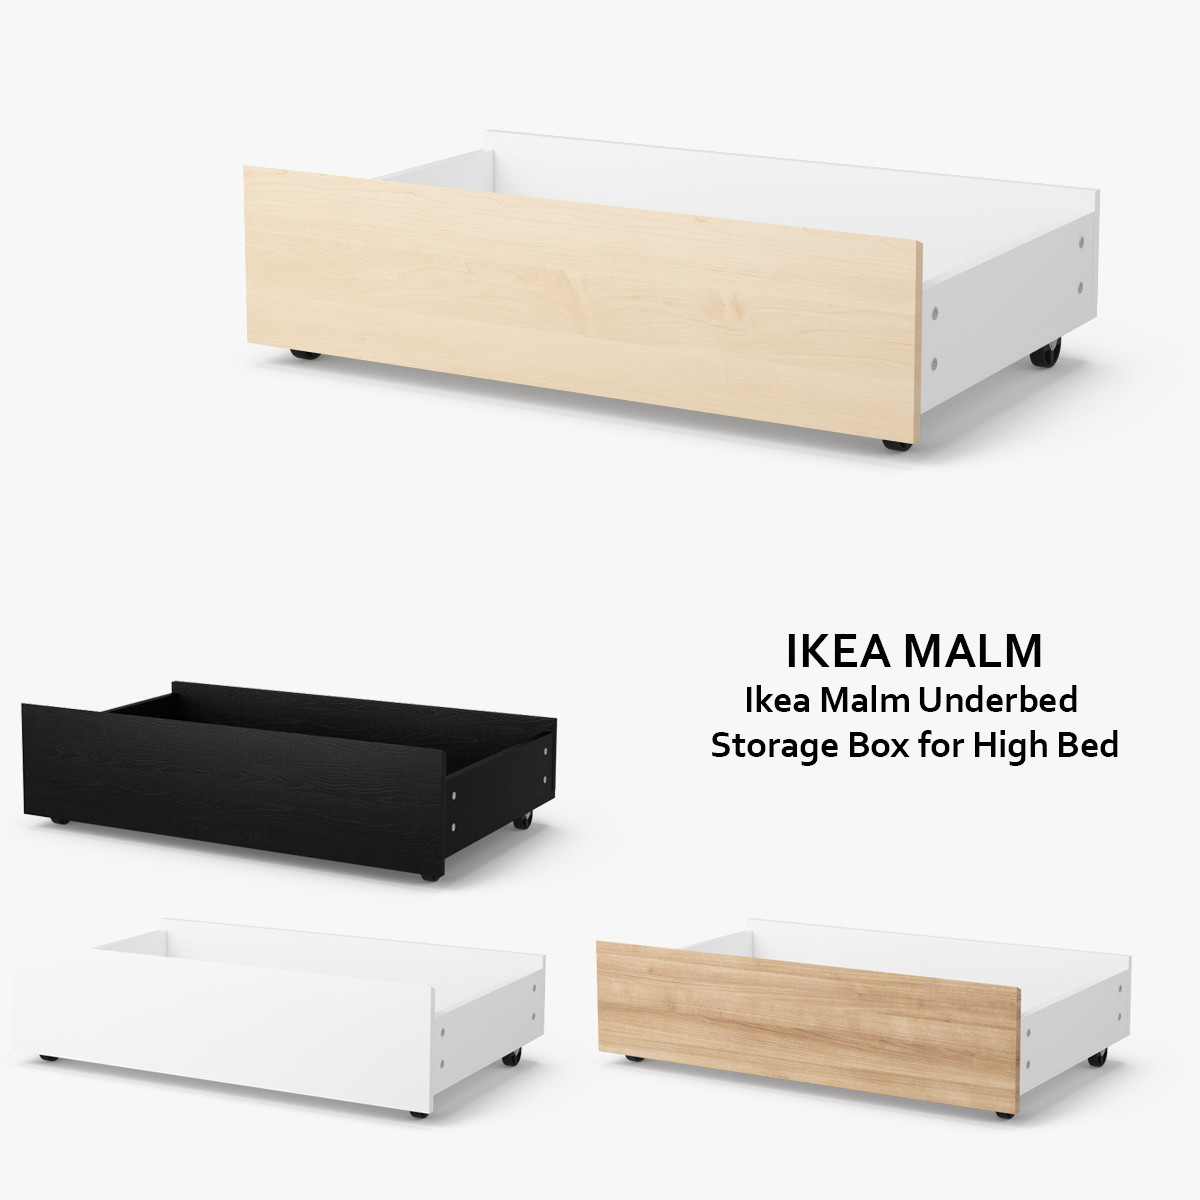 ikea drawers under bed storage. Black Bedroom Furniture Sets. Home Design Ideas